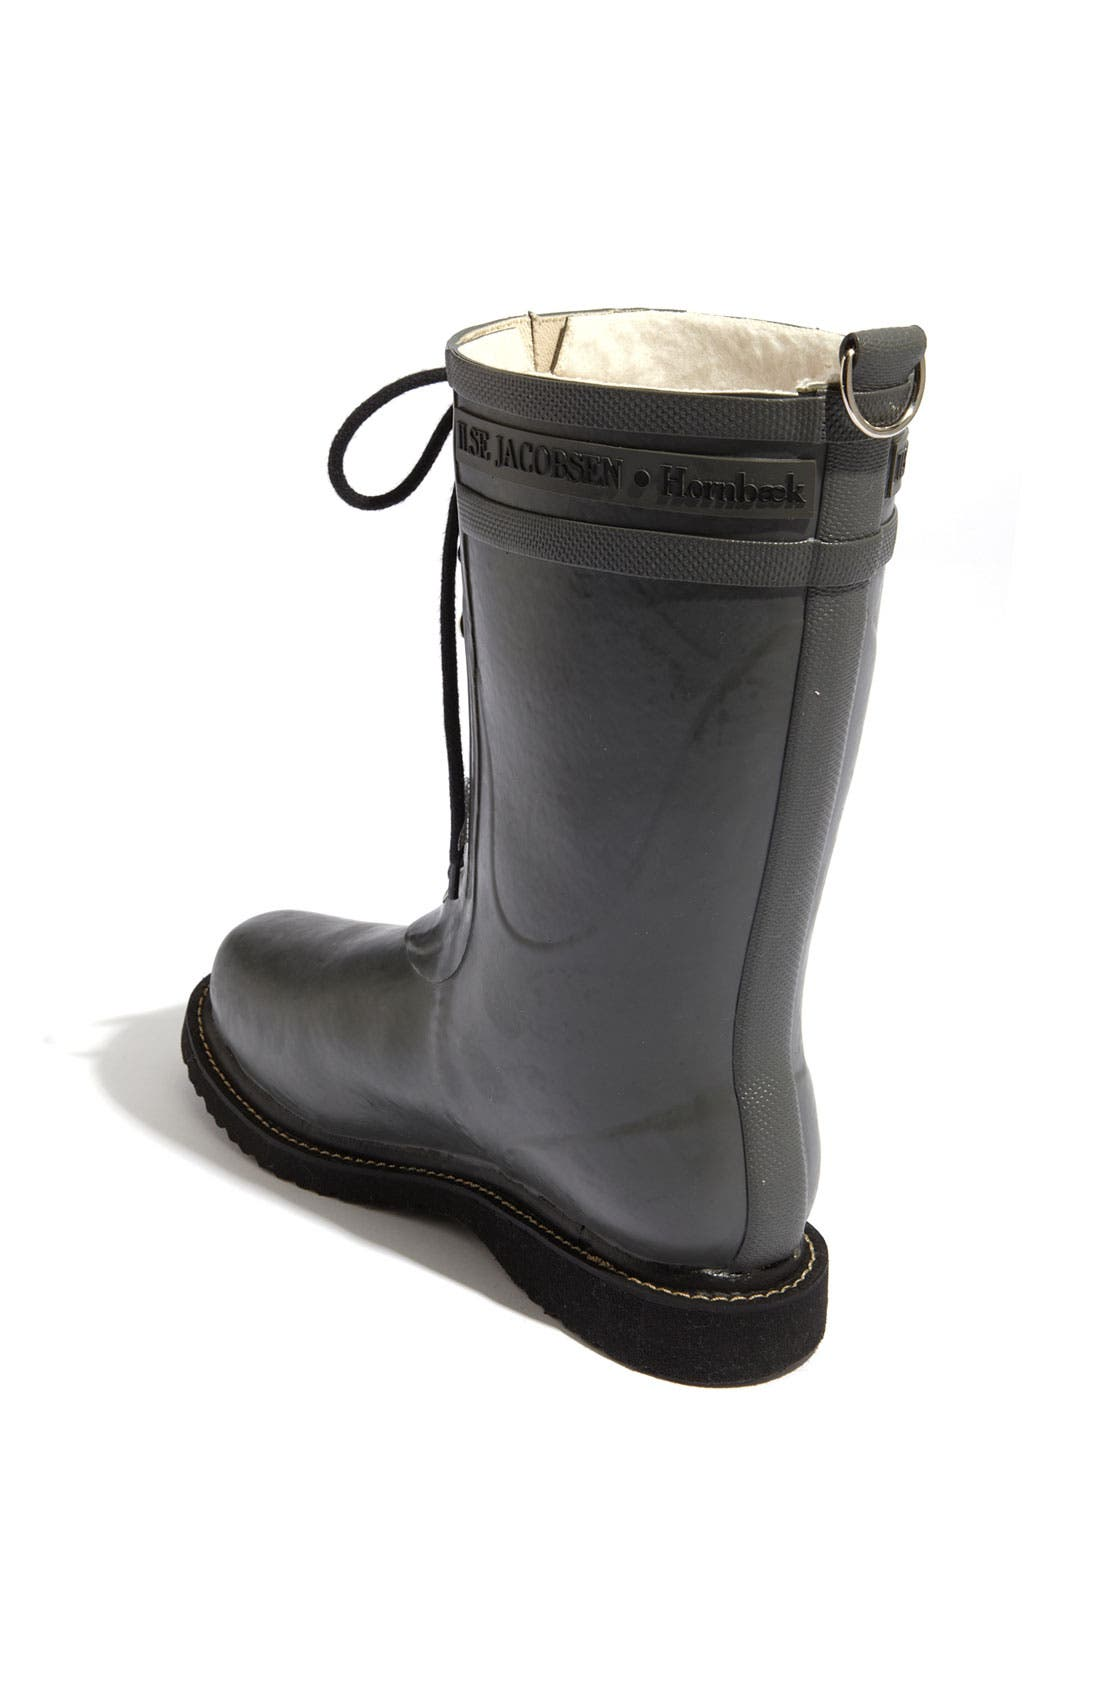 Alternate Image 2  - Ilse Jacobsen Hornbæk Rubber Boot